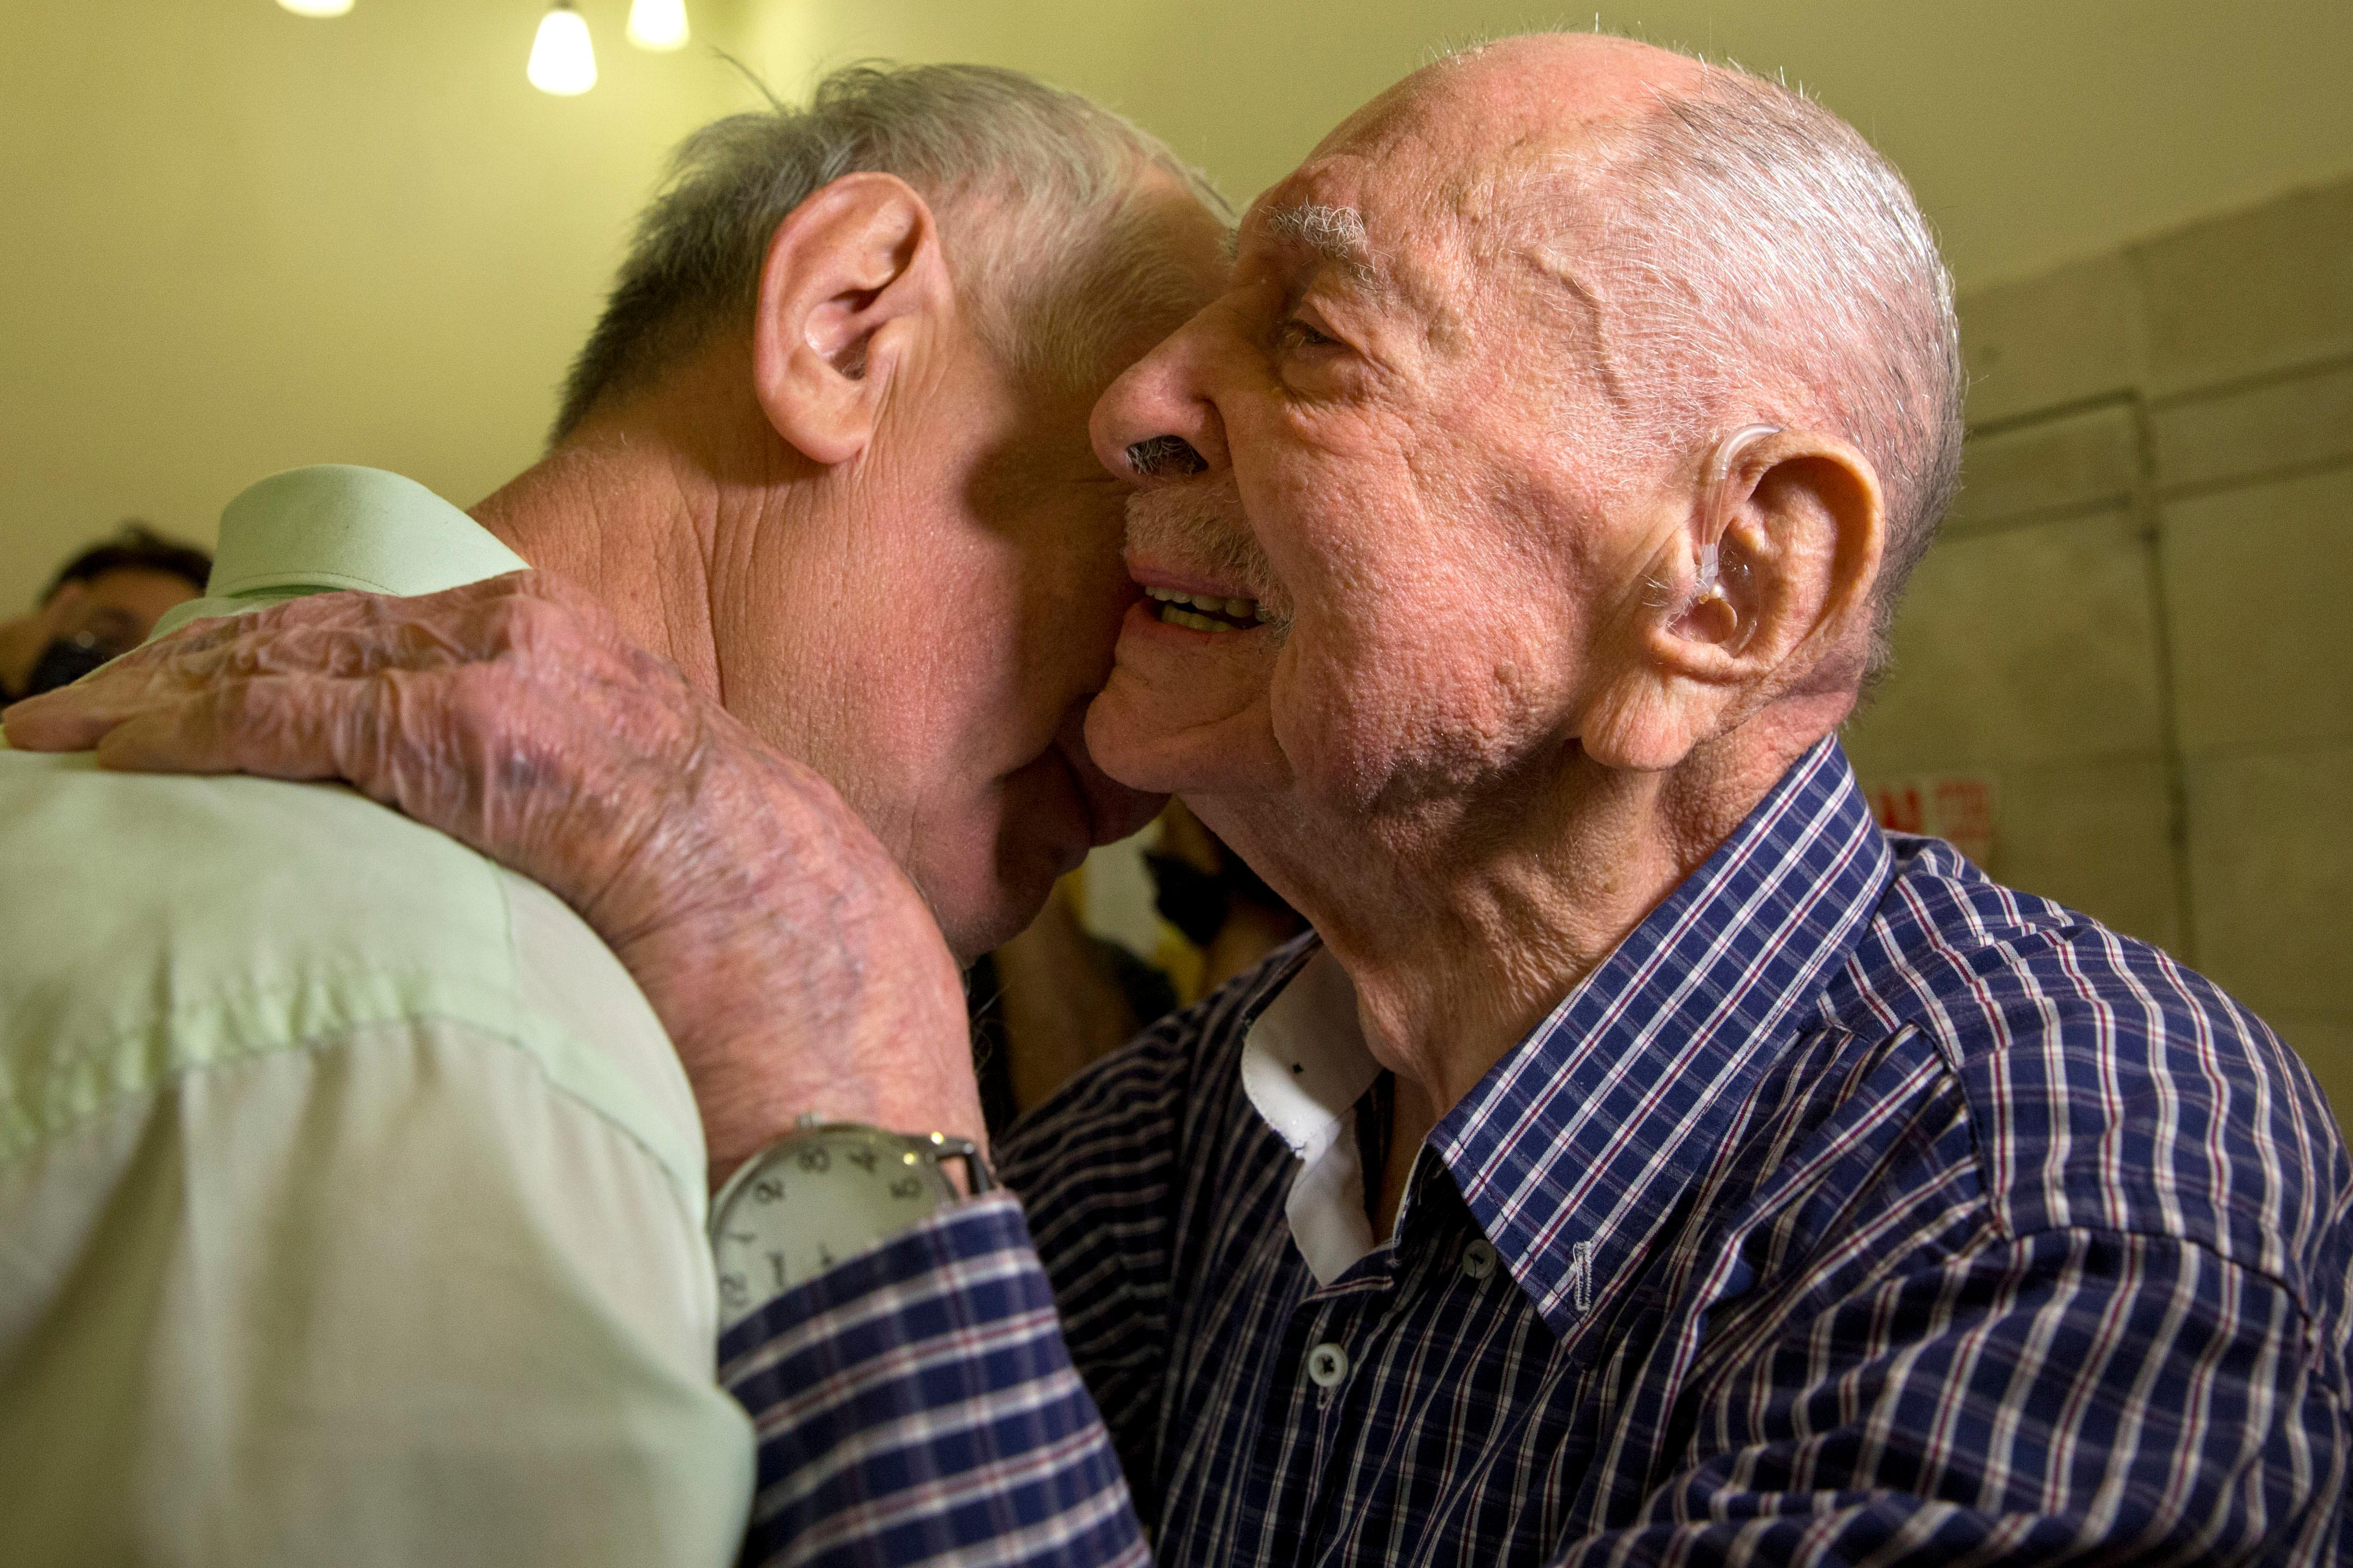 In this Thursday, Nov. 16, 2017 photo, Israeli Holocaust survivor Eliahu Pietruszka, right, embraces Alexandre Pietruszka as they meet for the first time in Kfar Saba. Pietruszka who fled Poland at the beginning of World War II and thought his entire family had perished learned that a younger brother had also survived, and his son, 66-year-old Alexandre, flew from Russia to see him. (AP Photo/Sebastian Scheiner)